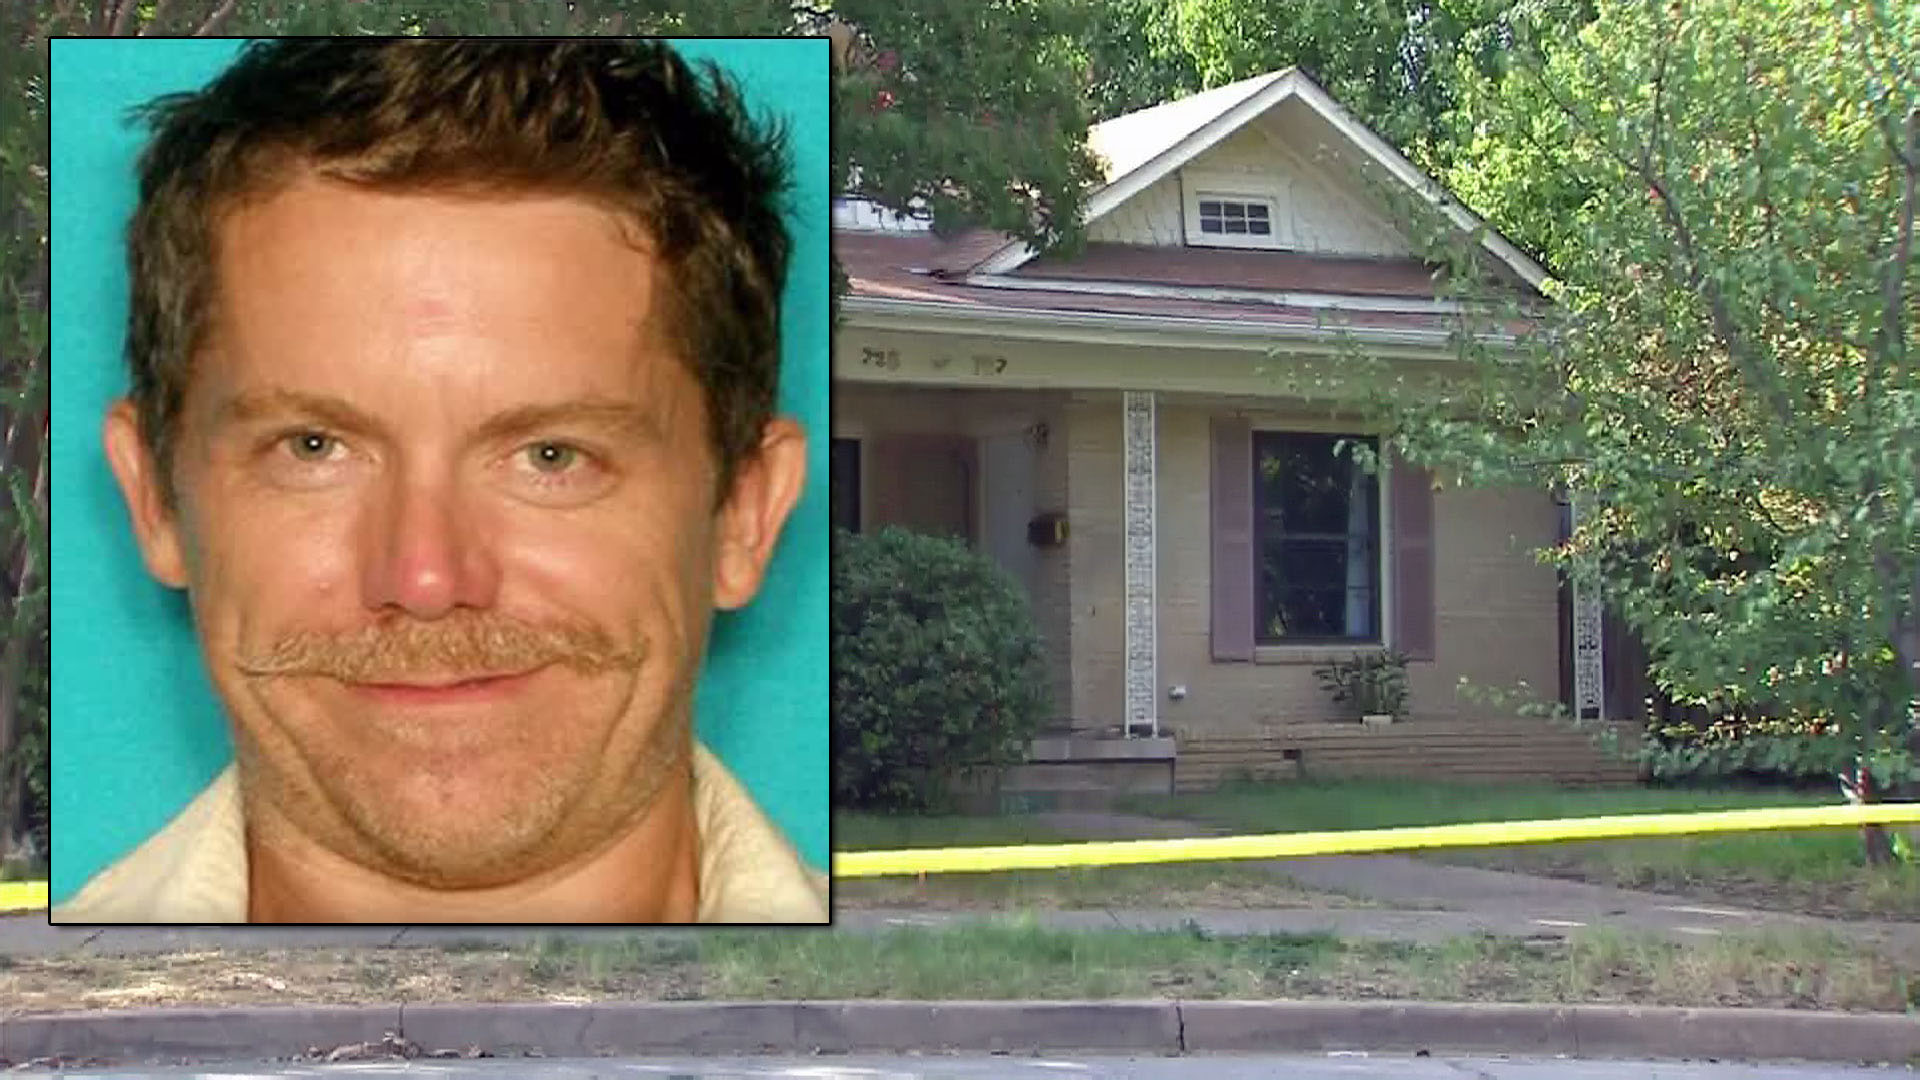 Christopher Brian Colbert (inset, in a previous mugshot) is suspected of posing as his deceased neighbor to sell the neighbor's home, in the 700 block of Winnetka Avenue in Dallas, police say.